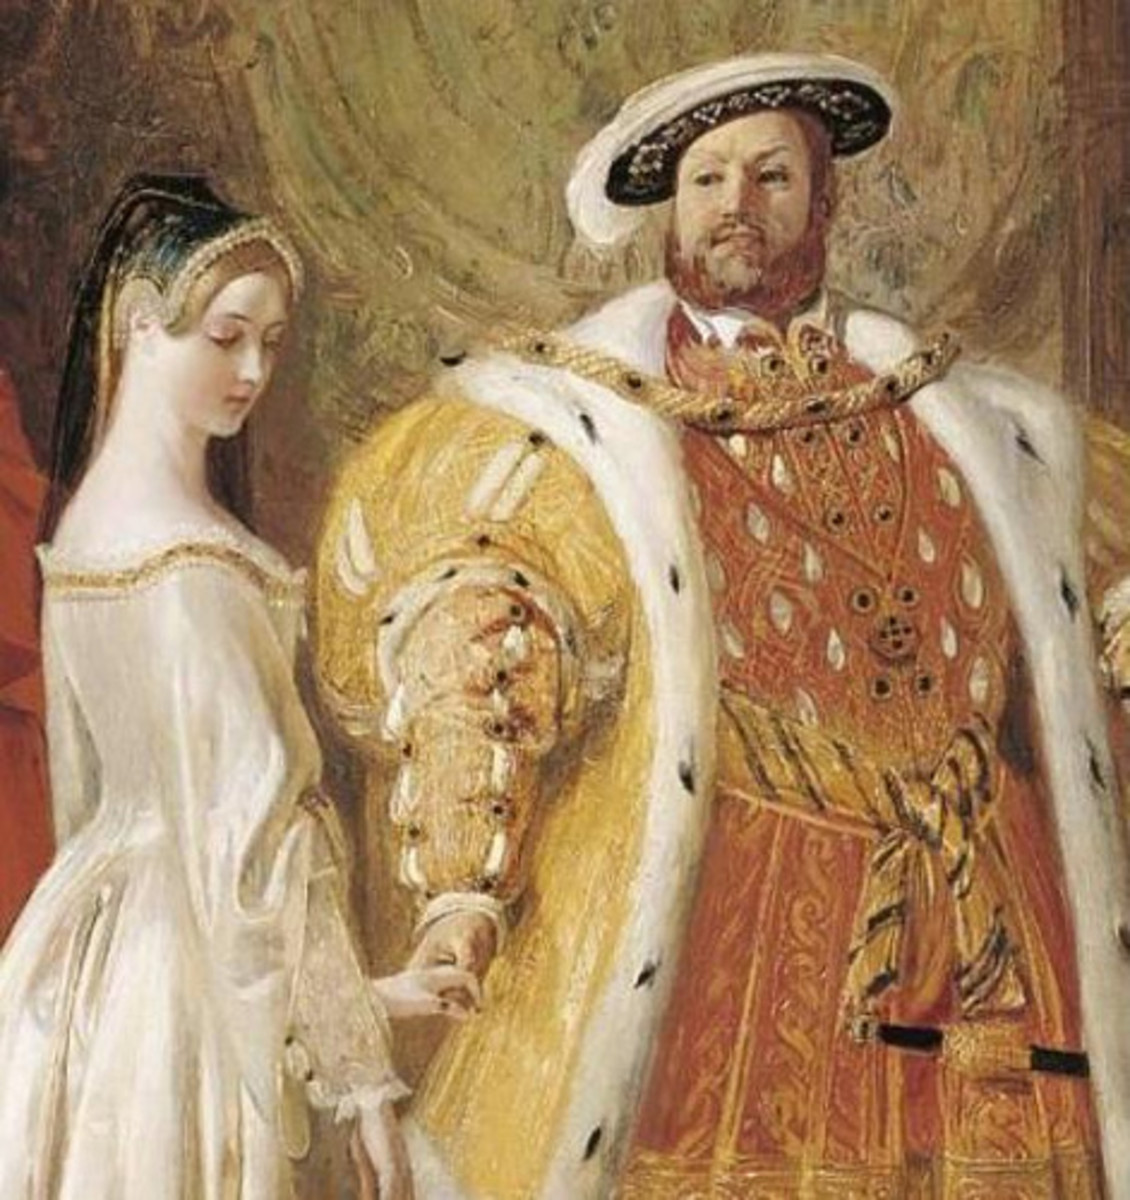 Henry VIII timeslip parallel worlds.